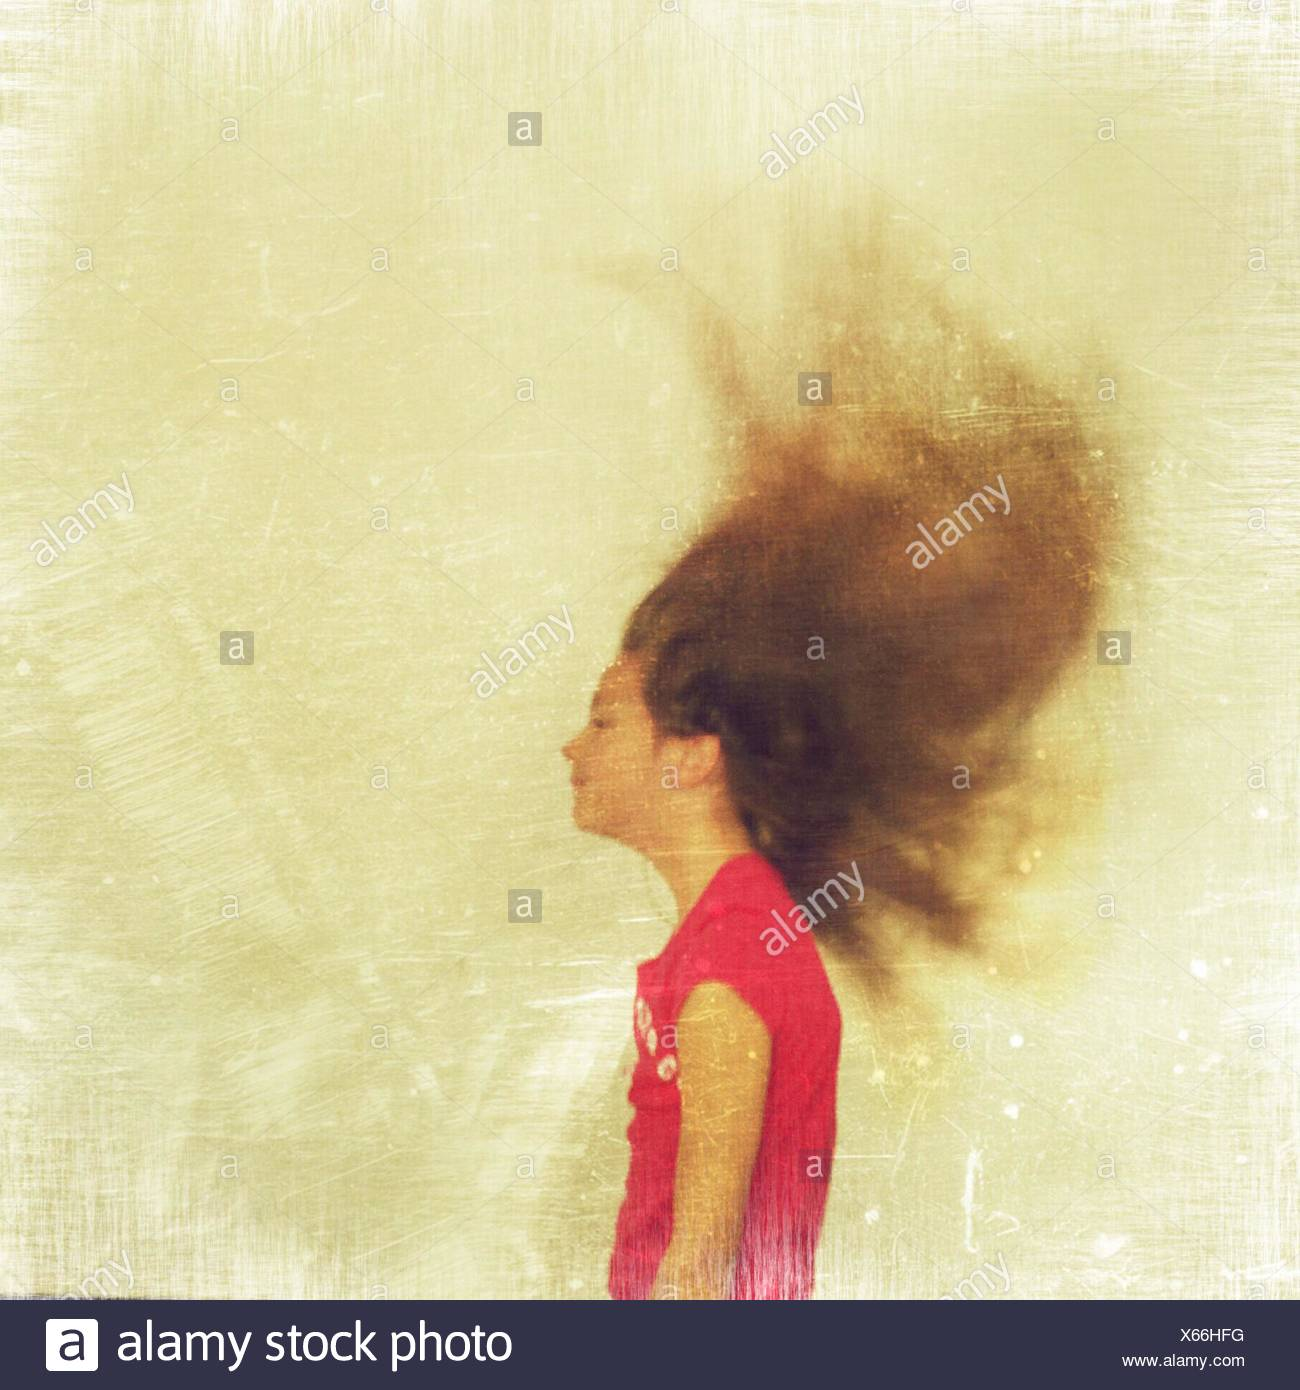 Side View Of Girl With Tousled Hair - Stock Image